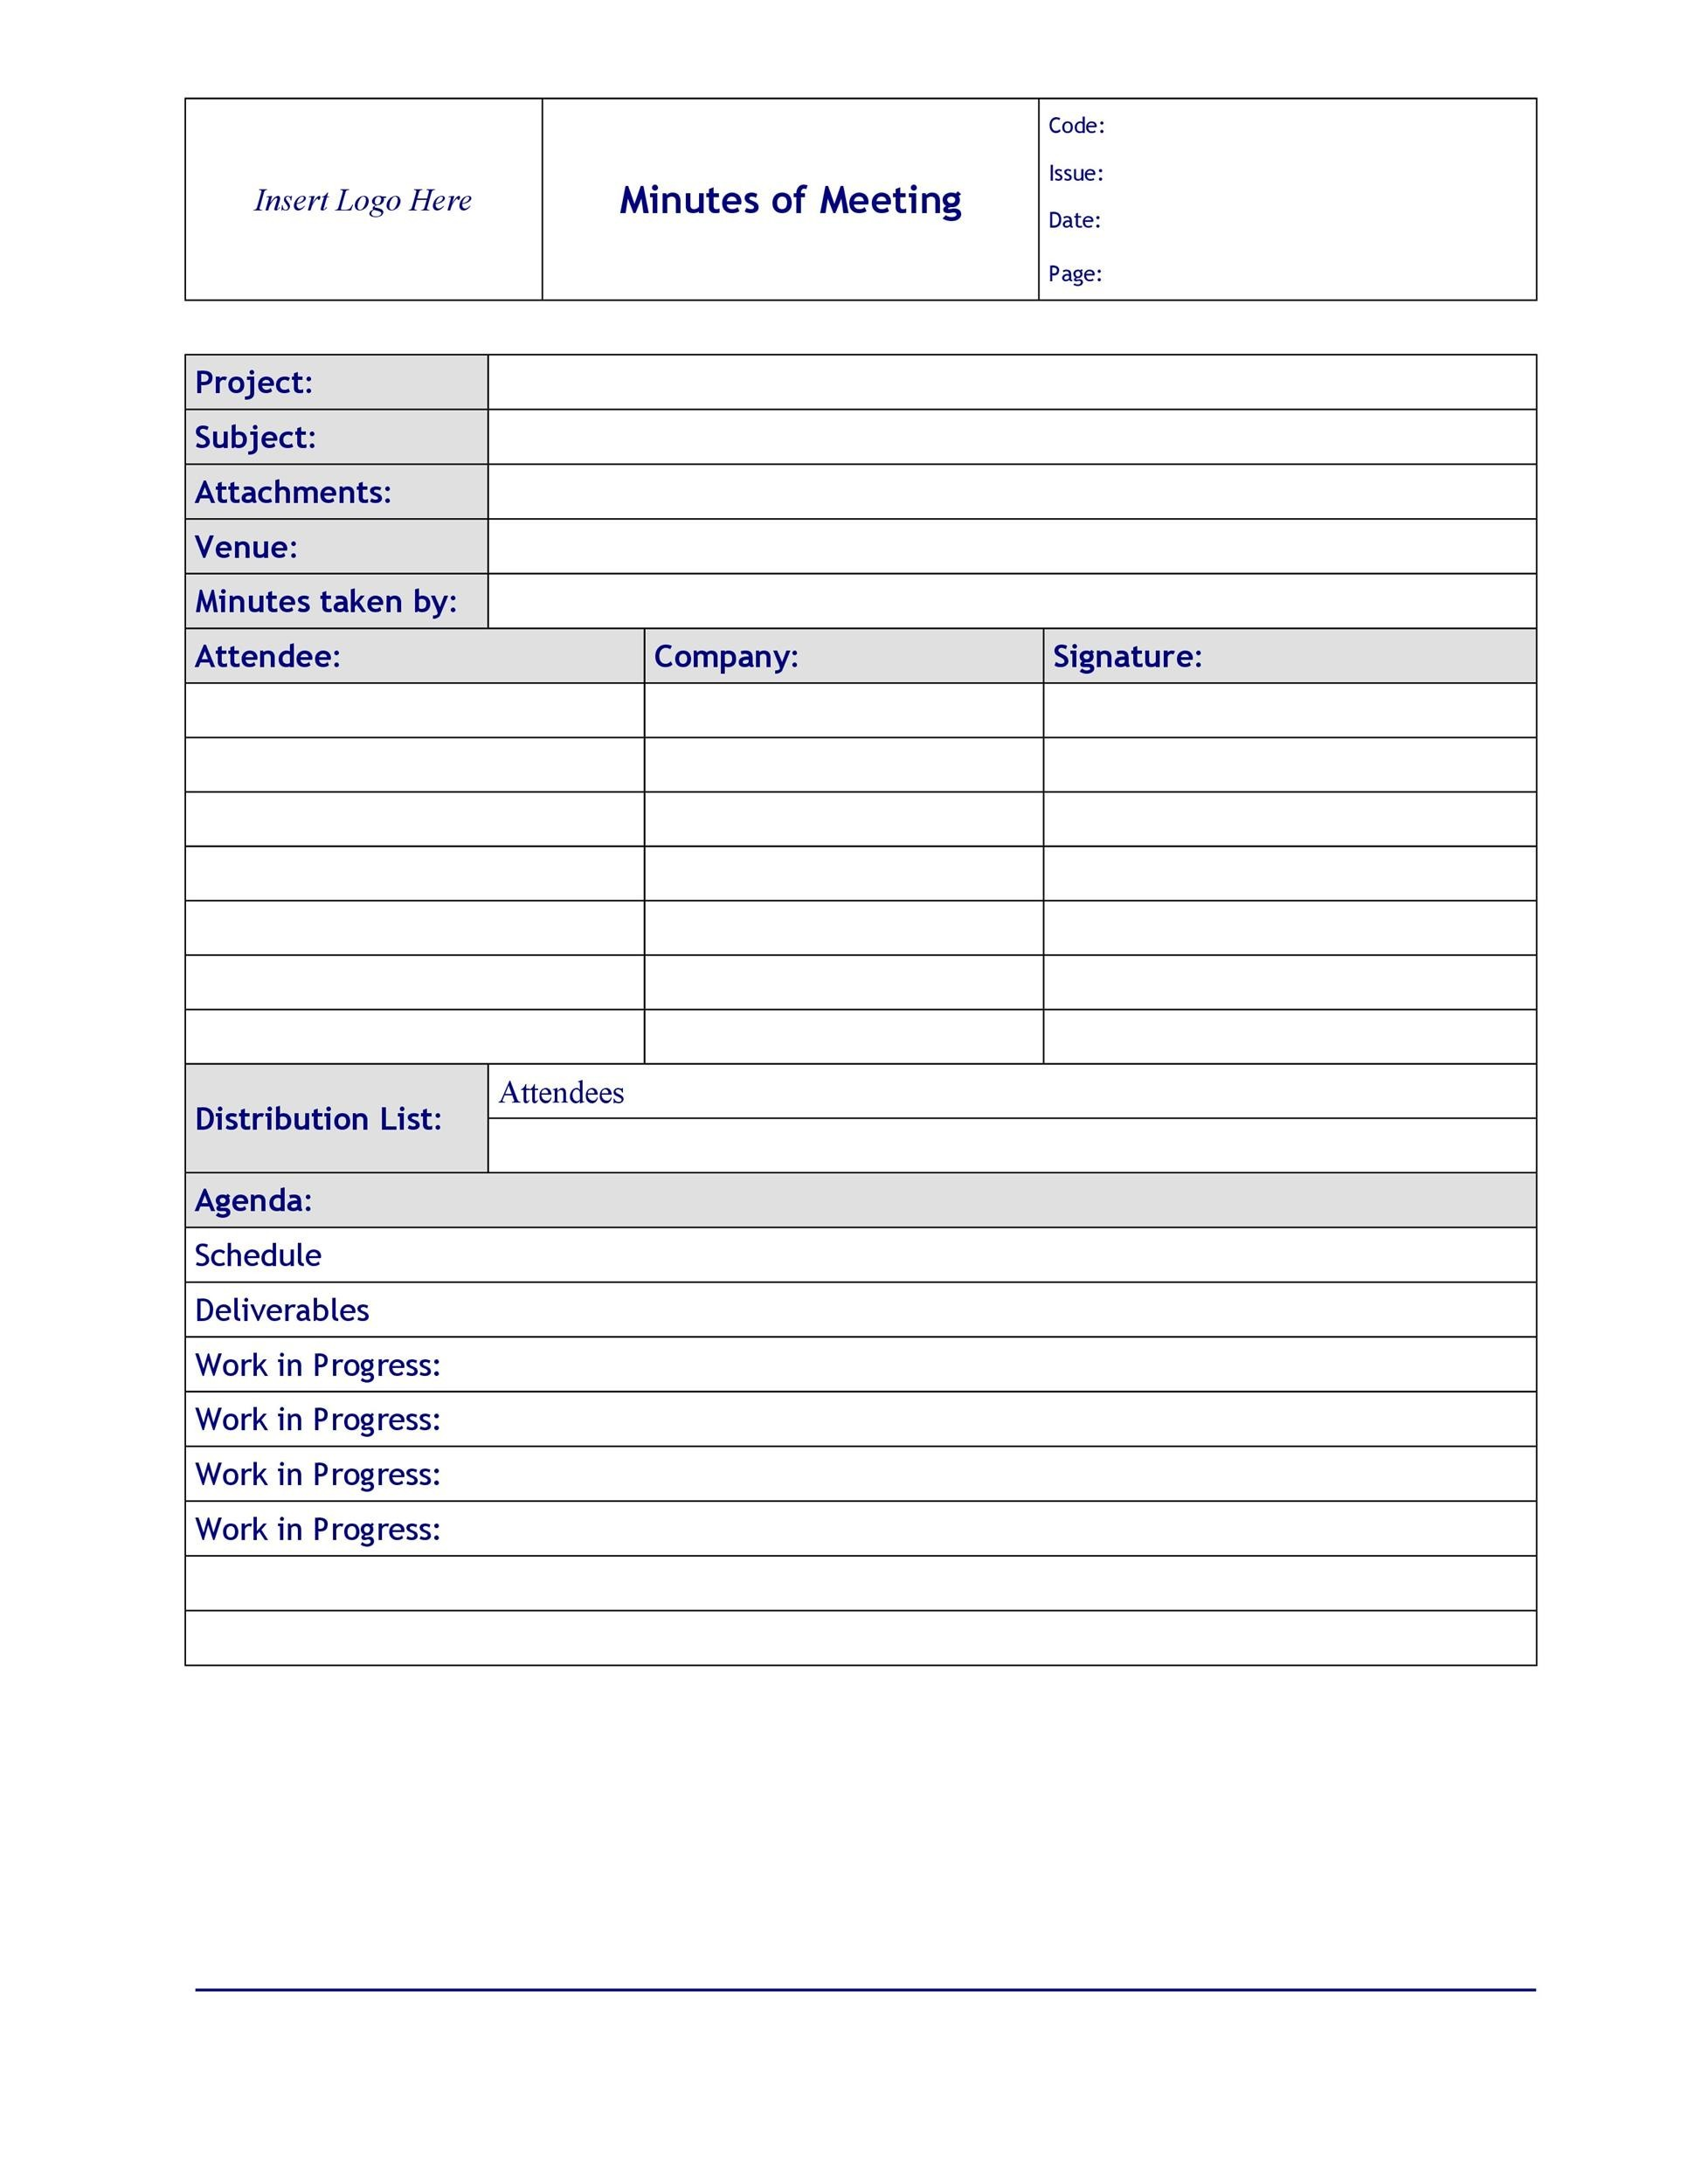 20 Handy Meeting Minutes Meeting Notes Templates – Meeting Minutes Templates Free